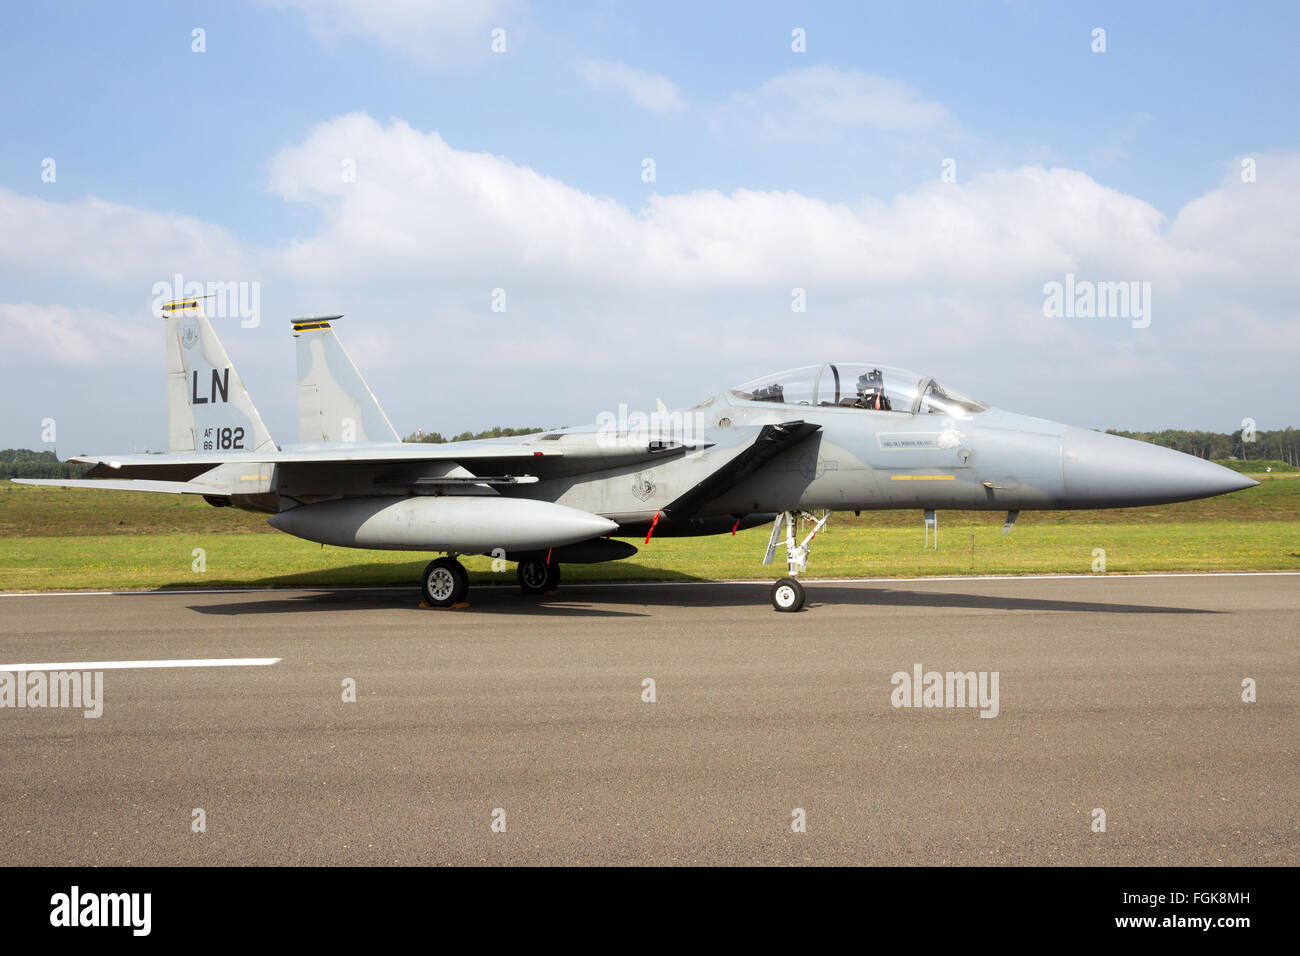 US Air Force F-15 Eagle fighter jet from RAF Lakenheath on the tarmac of Kleine Brogel Ai - Stock Image